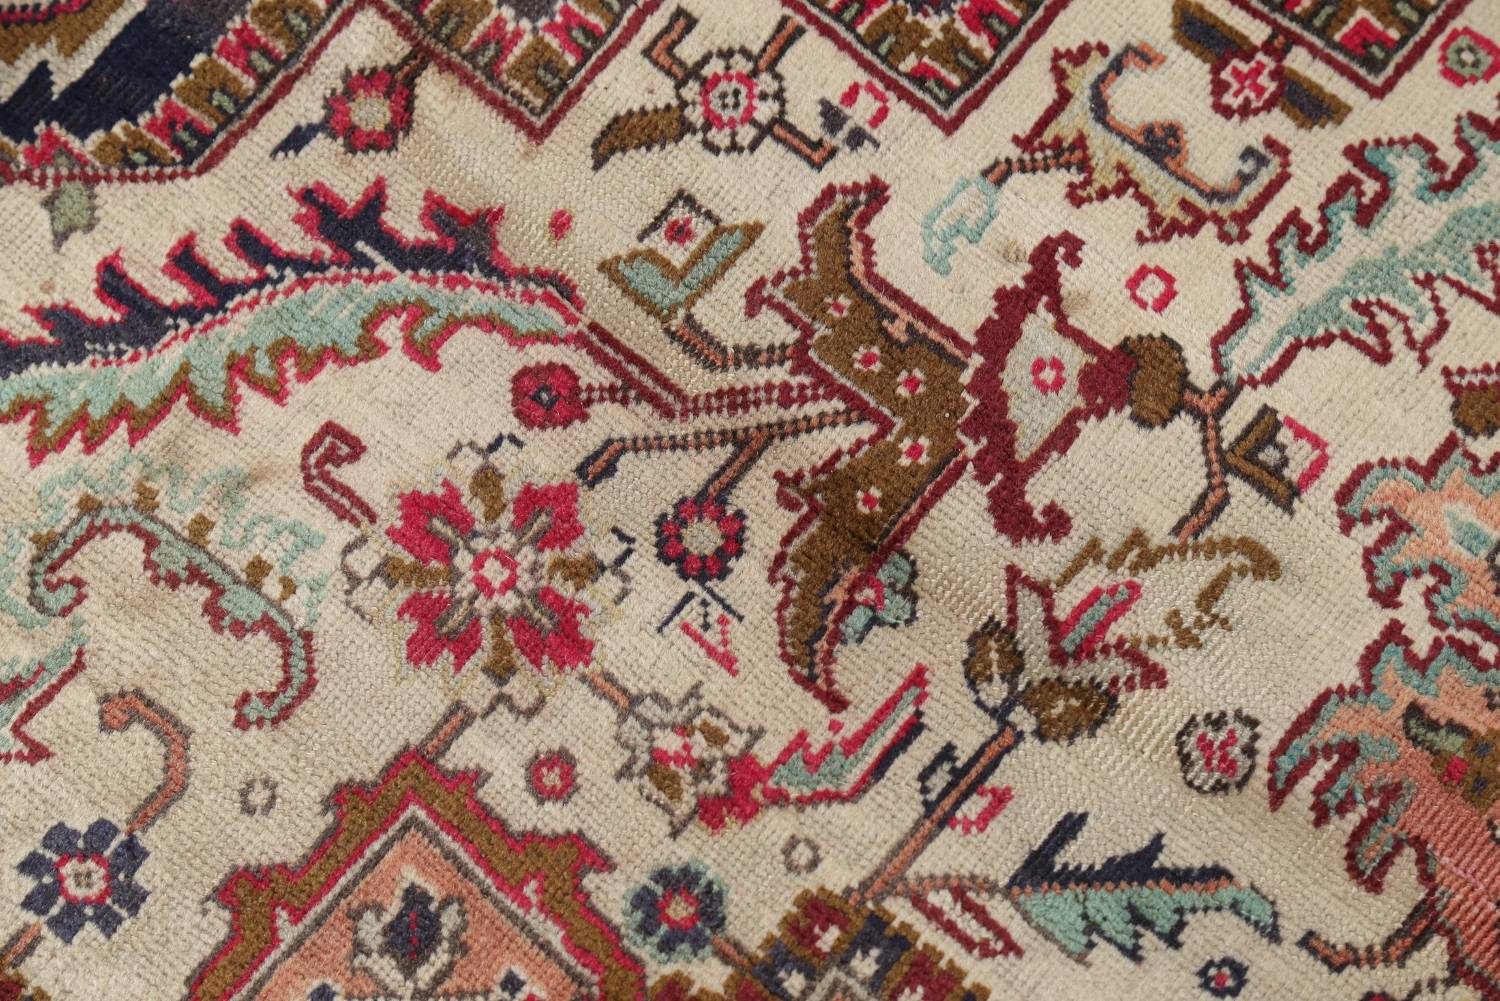 One-of-a-Kind Antique Heriz Serapi Persian Hand-Knotted 7x9 Wool Area Rug image 9